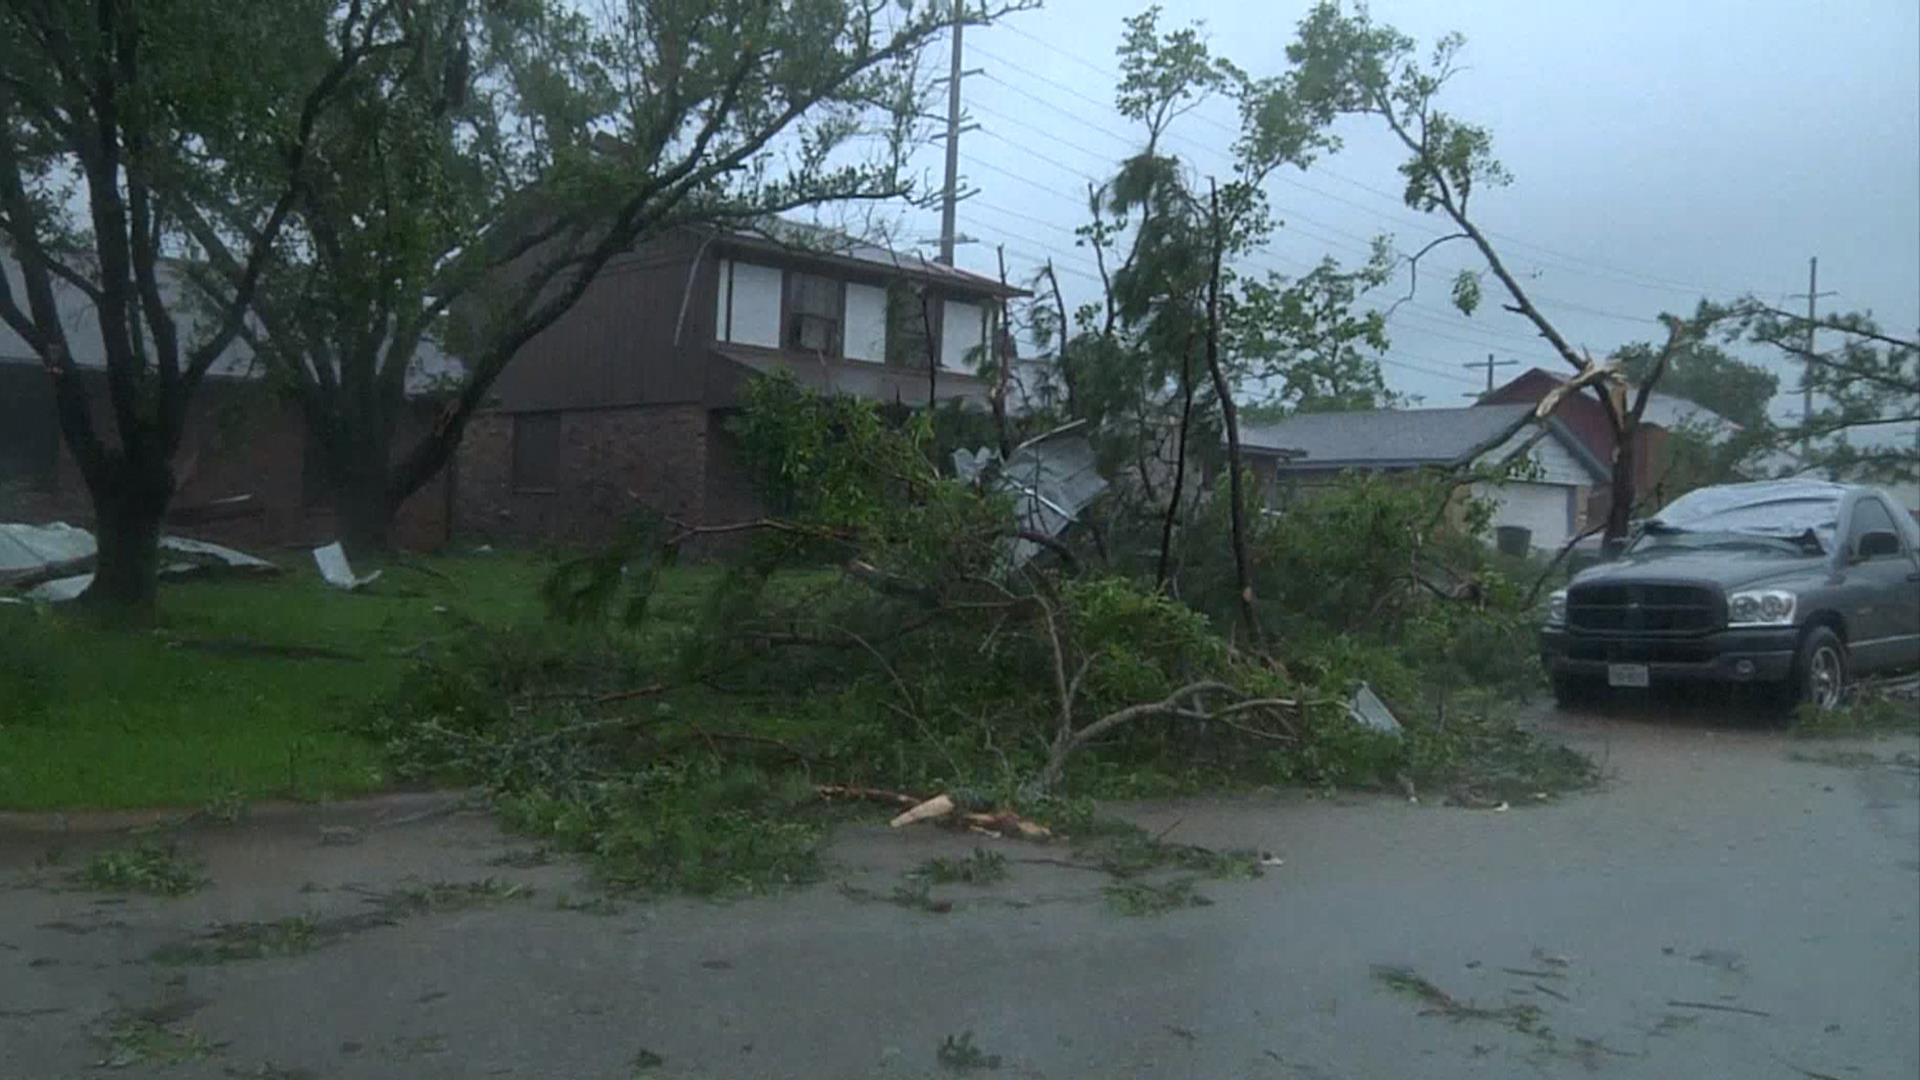 Severe Storms Cause Damage Across Central Texas - NBC News